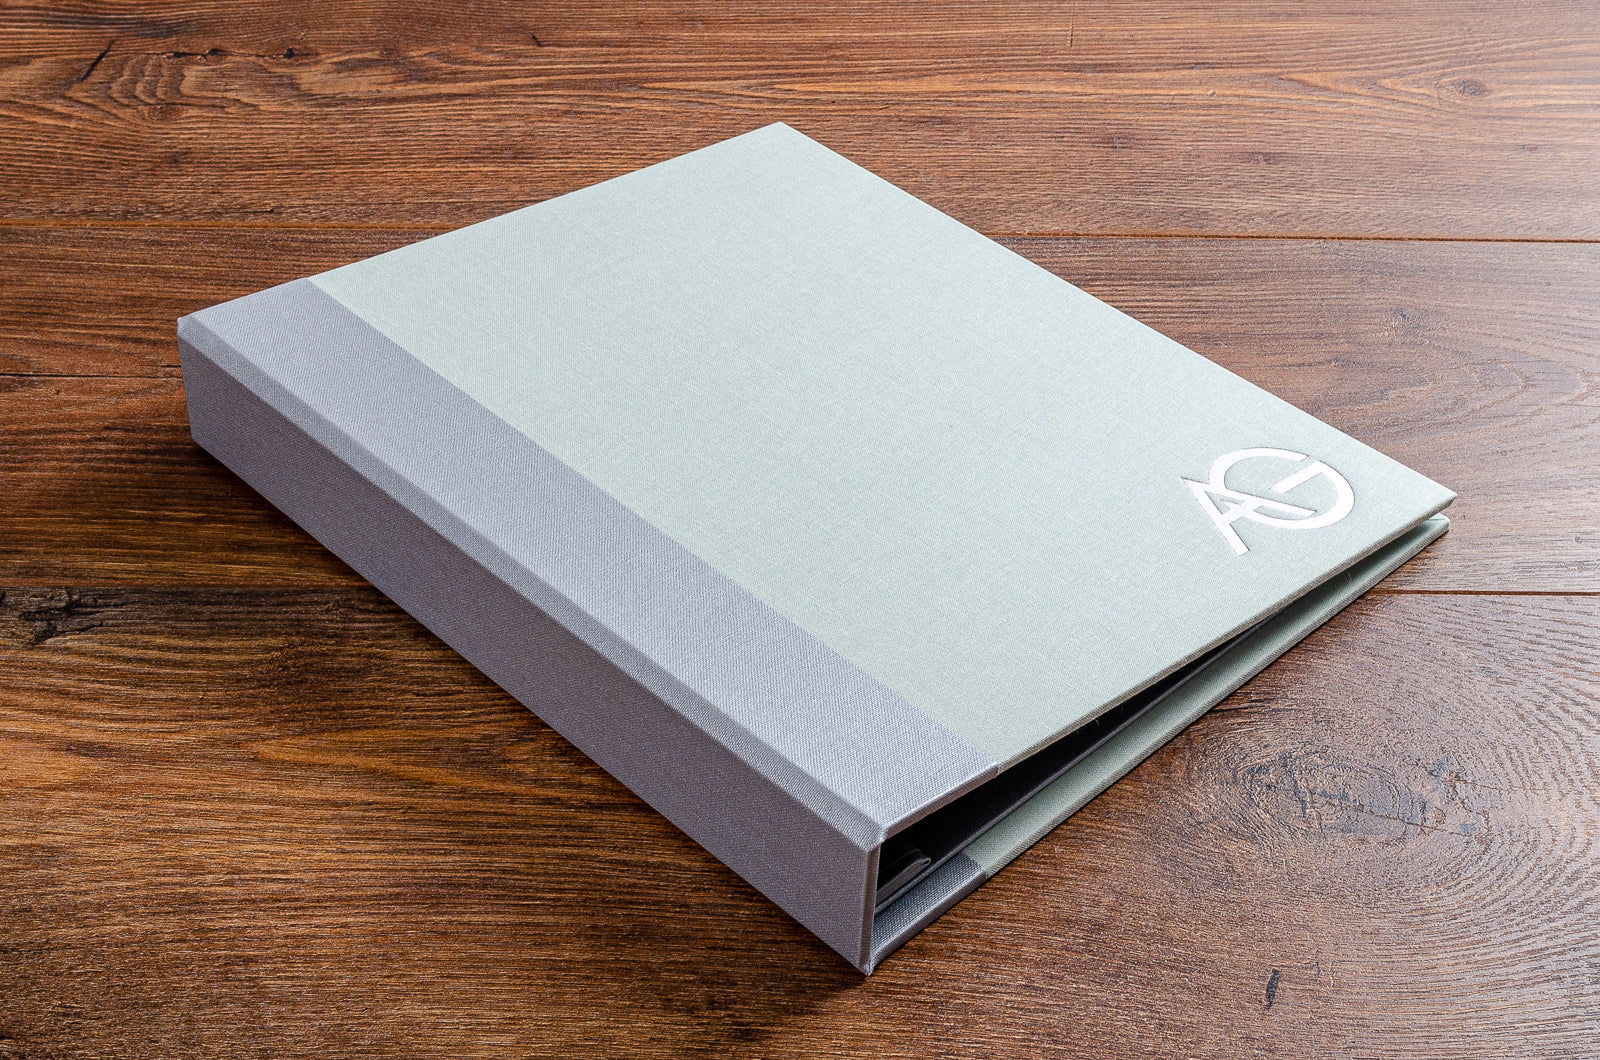 8.5 x 11 case bound portfolio book with pewter buckram spine cover